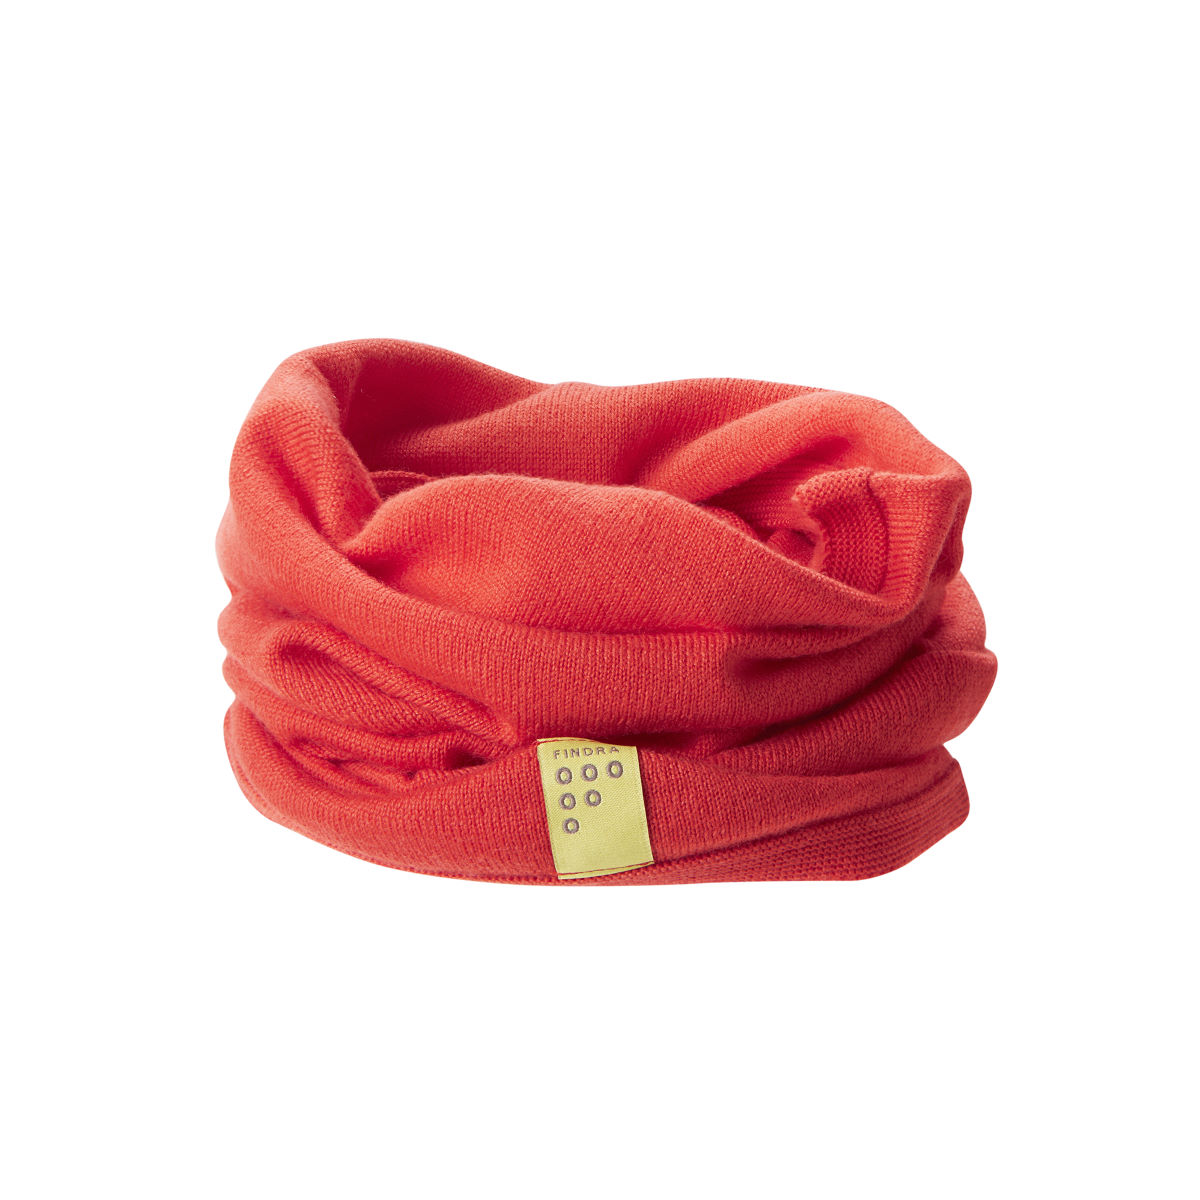 Cache-cou Femme FINDRA Betty - Taille unique Coral/Coral Couvre-cous